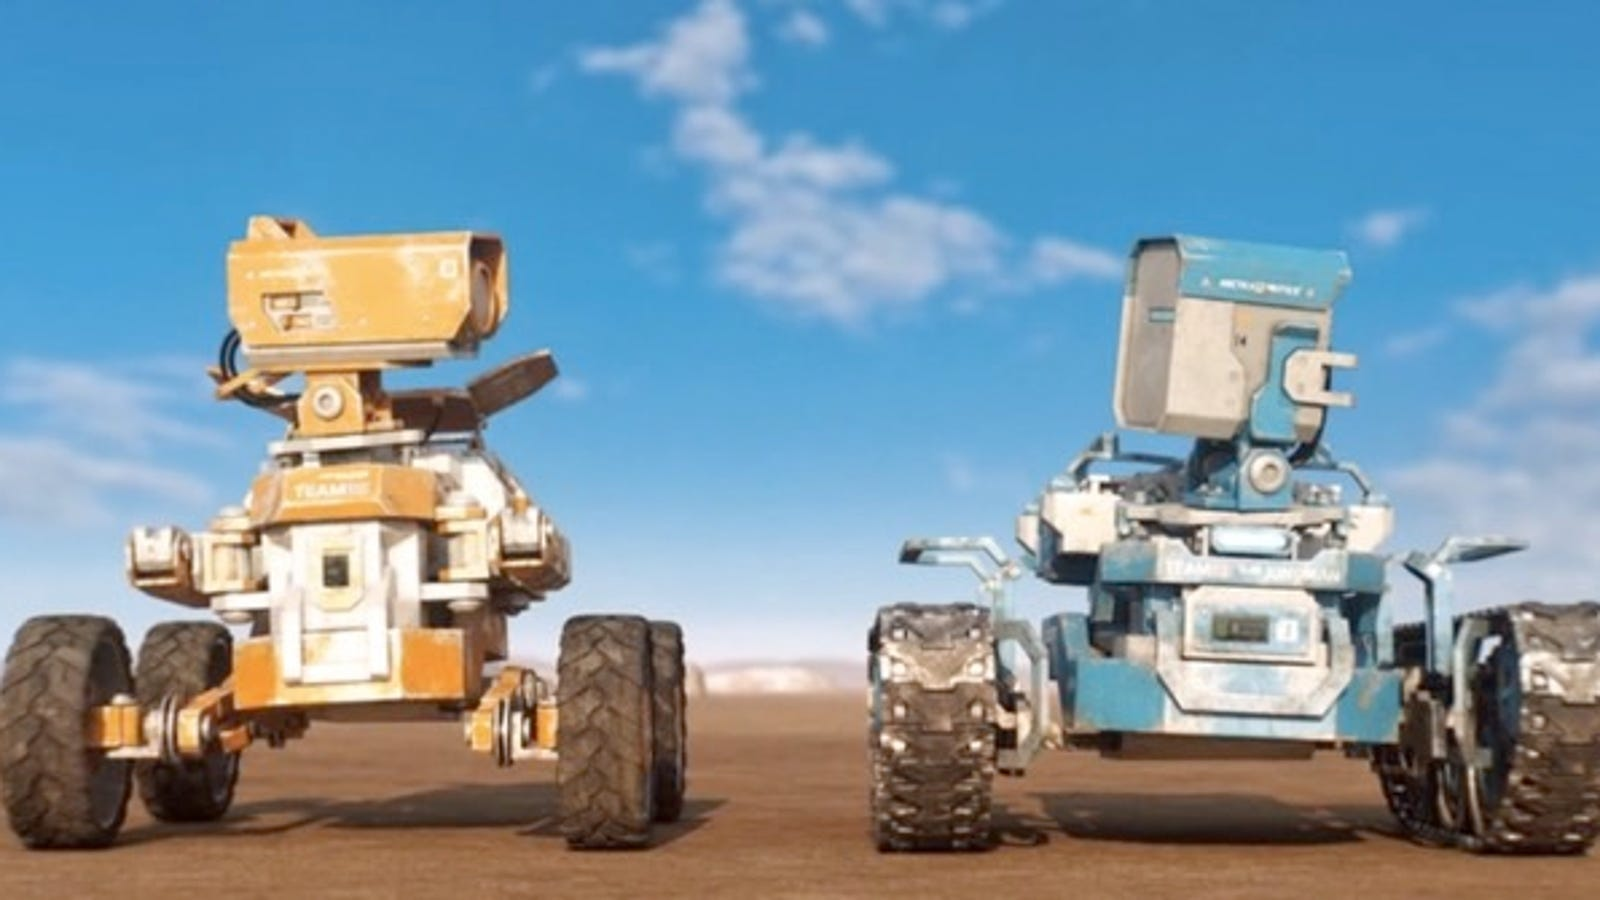 A Pair of Space Rovers Embark on an Unexpectedly Wild Mission in Charming Short Planet Unknown